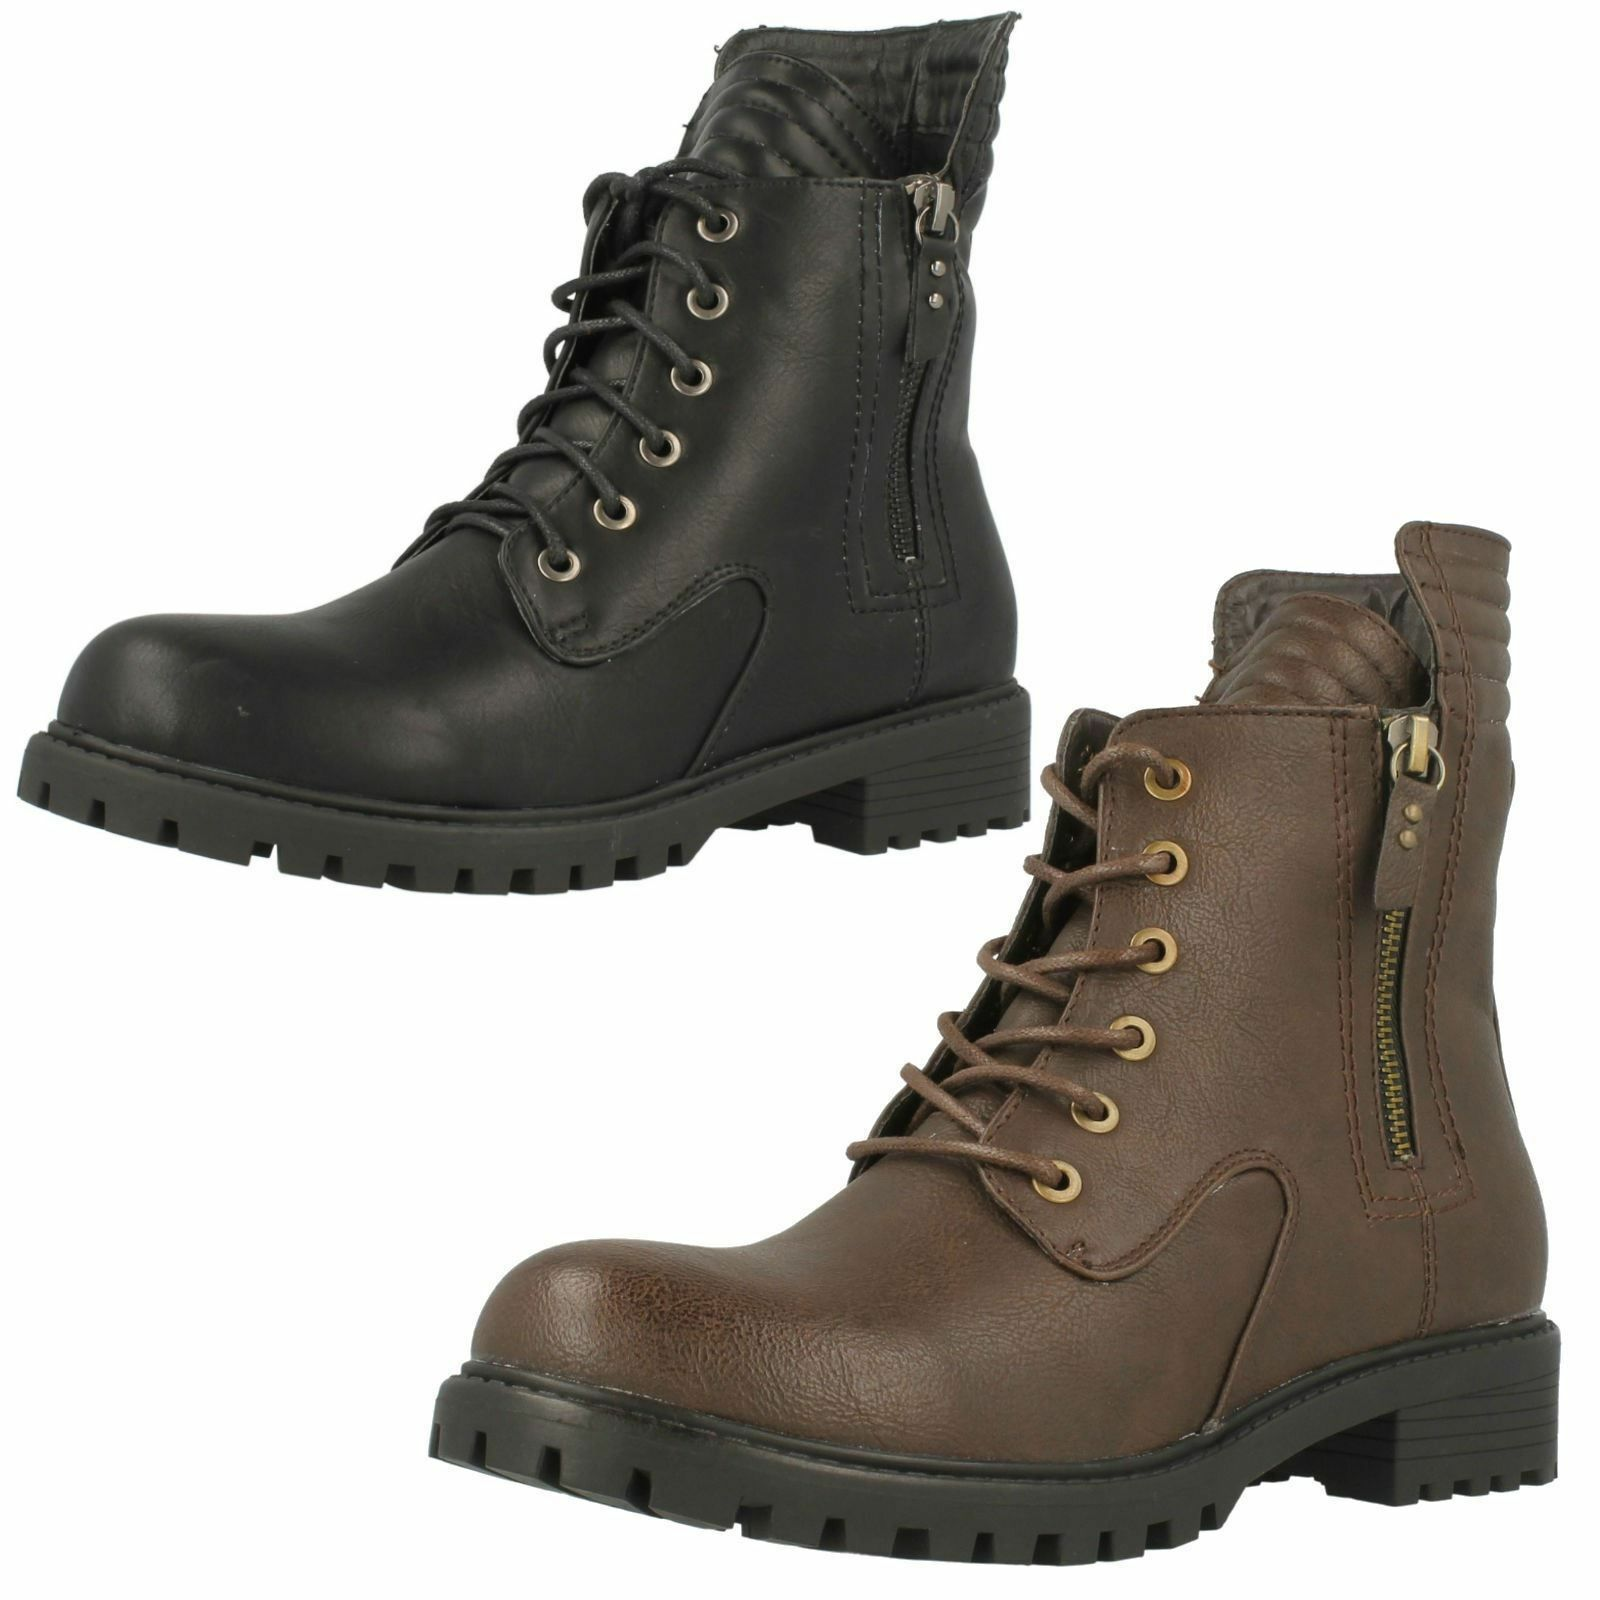 SALE Ladies F50325S Combat Ankle Lace-Up Boots  by Spot On £19.99